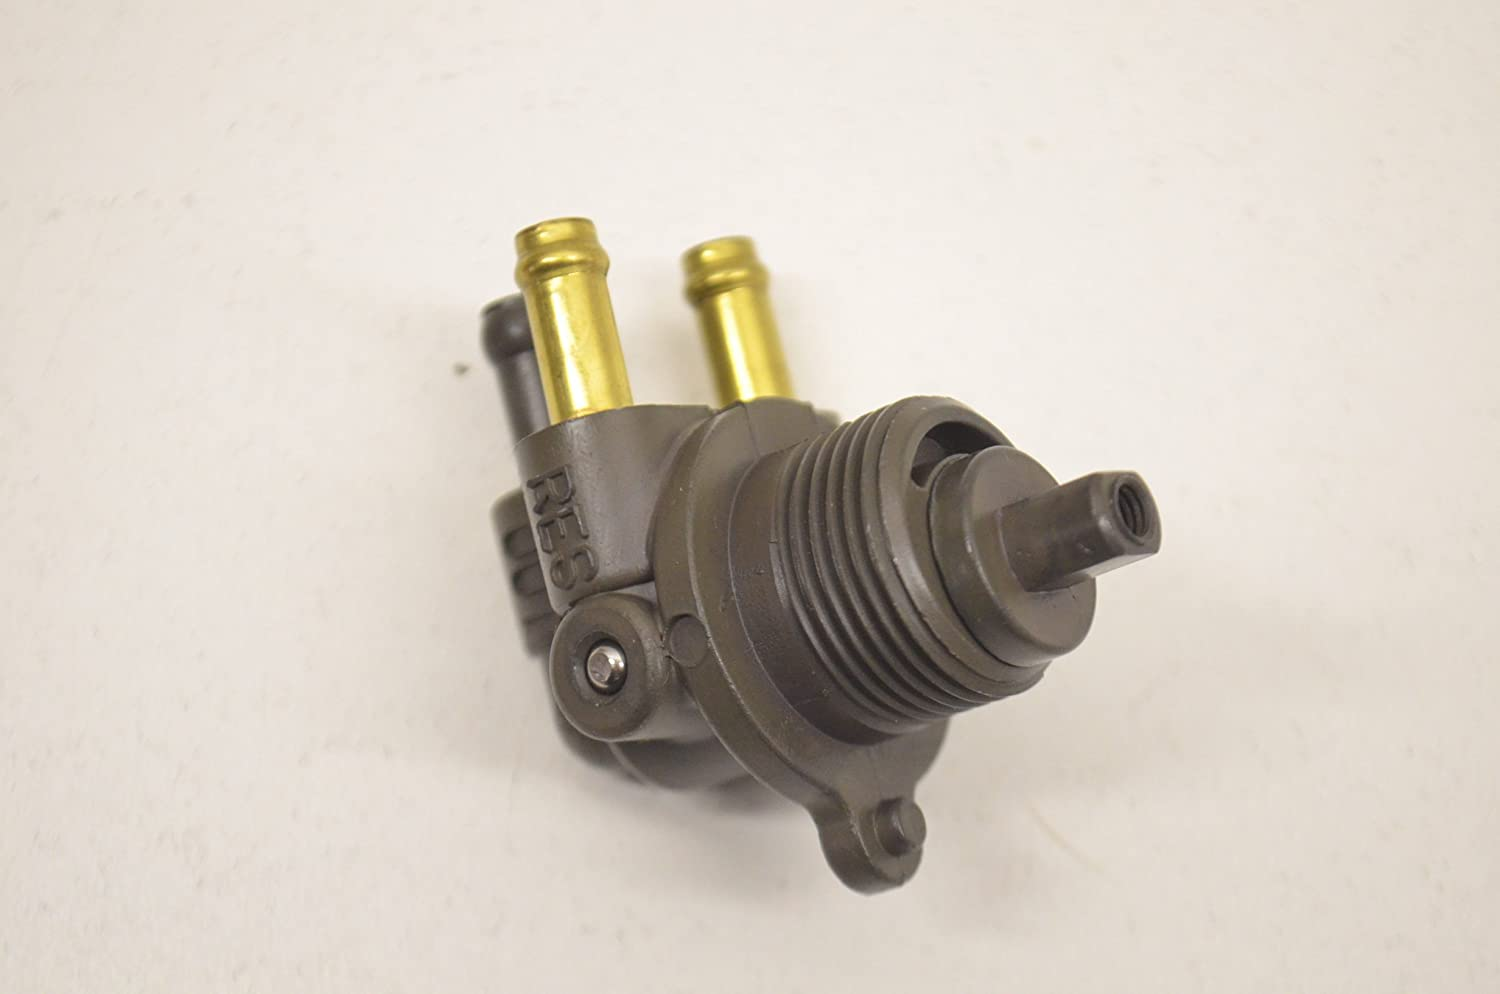 Yamaha 6K8-24500-01-00 Fuel Cock Assembly 1; New # 6K8-24500-02-00 Made by Yamaha